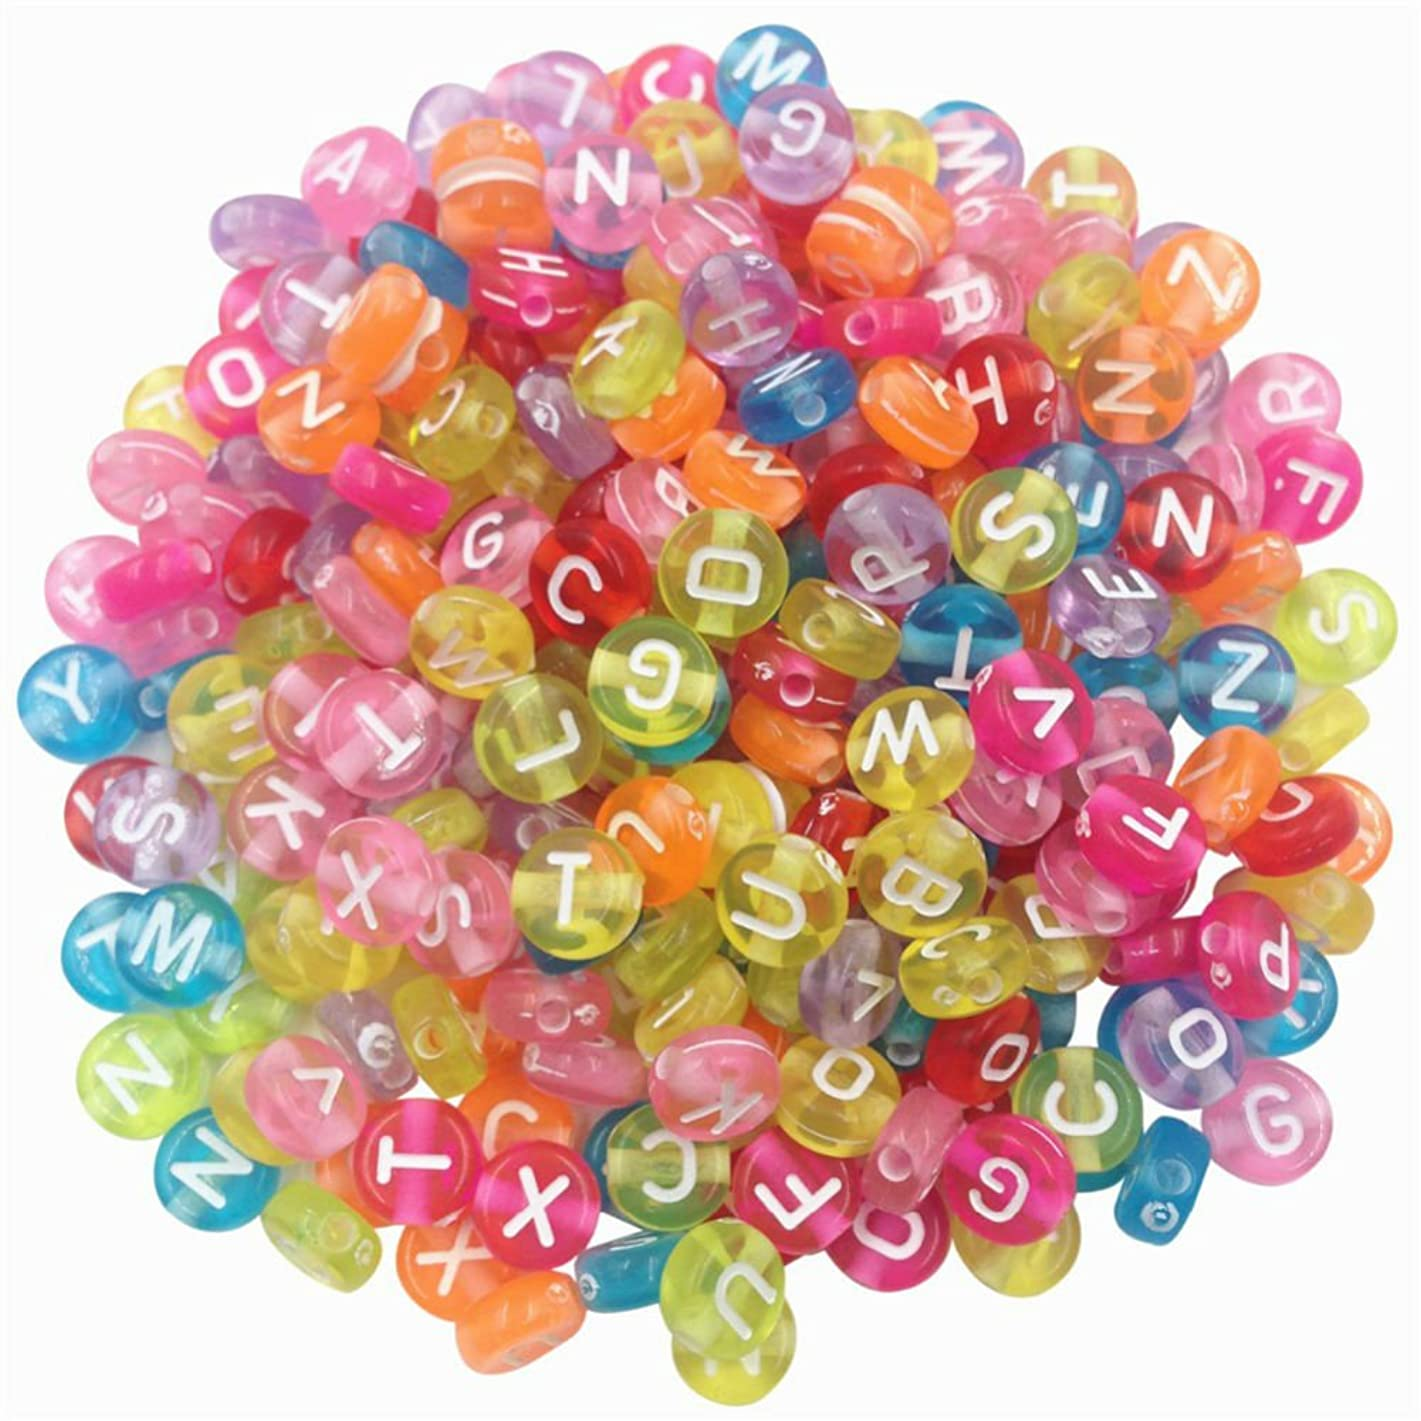 AKOAK Pack of 200 Mixed 4 x 7 mm Round Candy Colors Acrylic Plastic Beads with White Letters/ Alphabet Letter